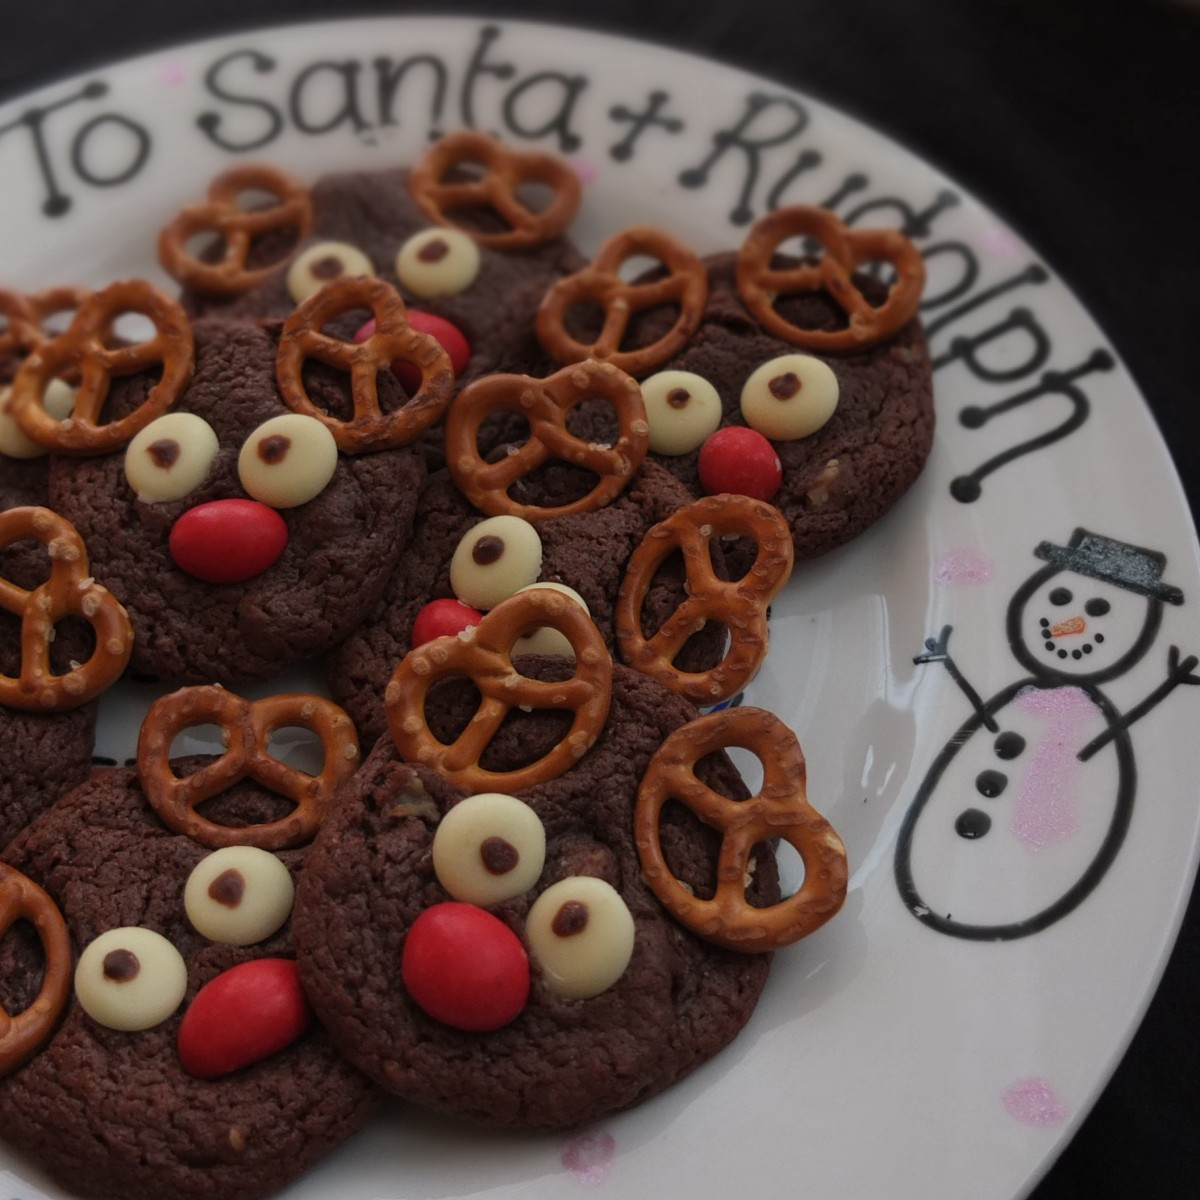 Rudolph reindeer gourmet chocolate cookies recipe!  Glutenfree or not... with labels for gifting cookies-in-2-jars! :)